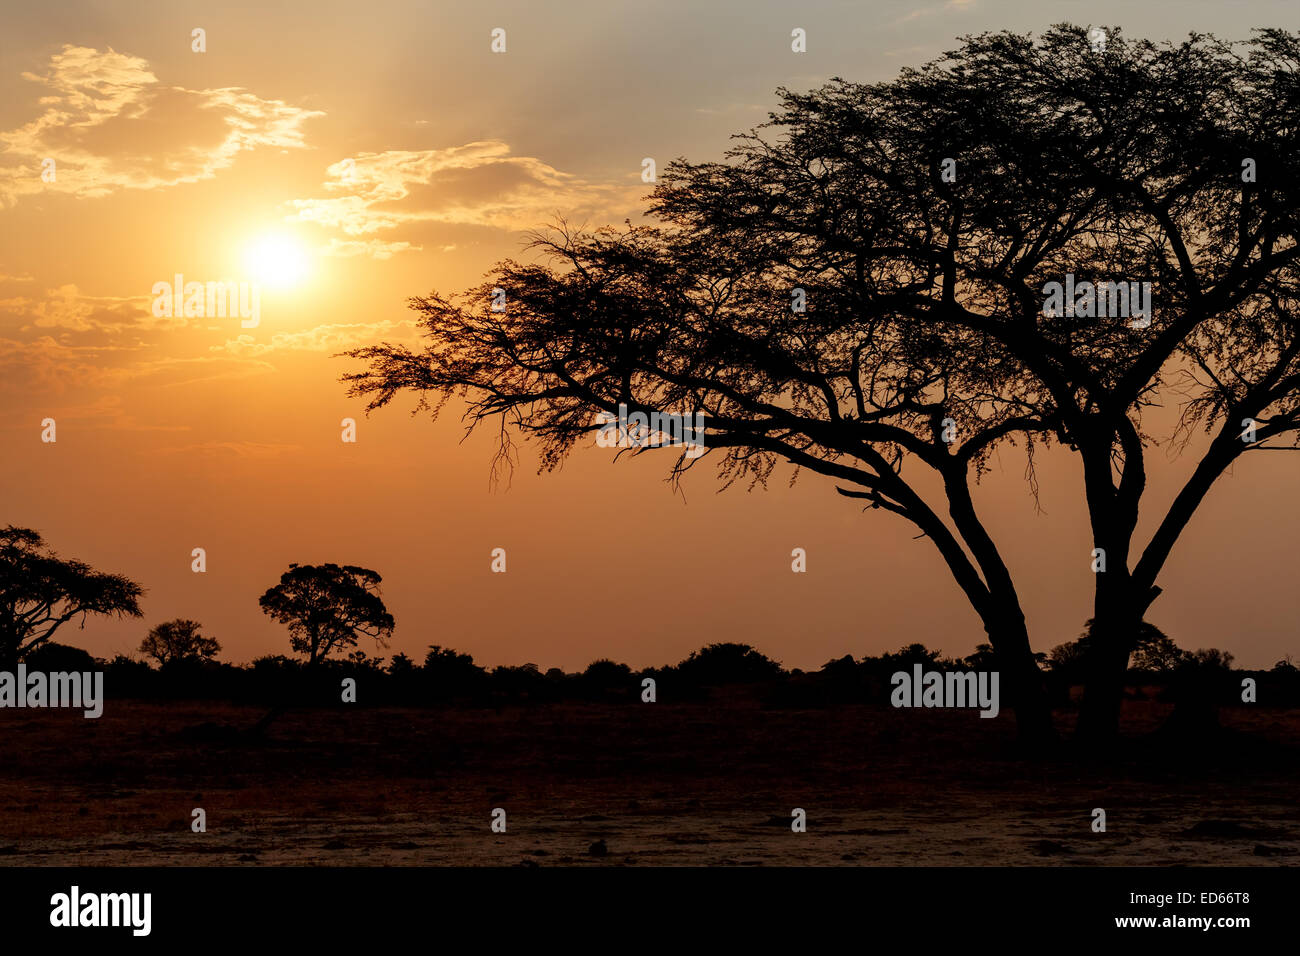 African sunset with tree in front, Hwange national park, Matabeleland, North Zimbabwe Stock Photo